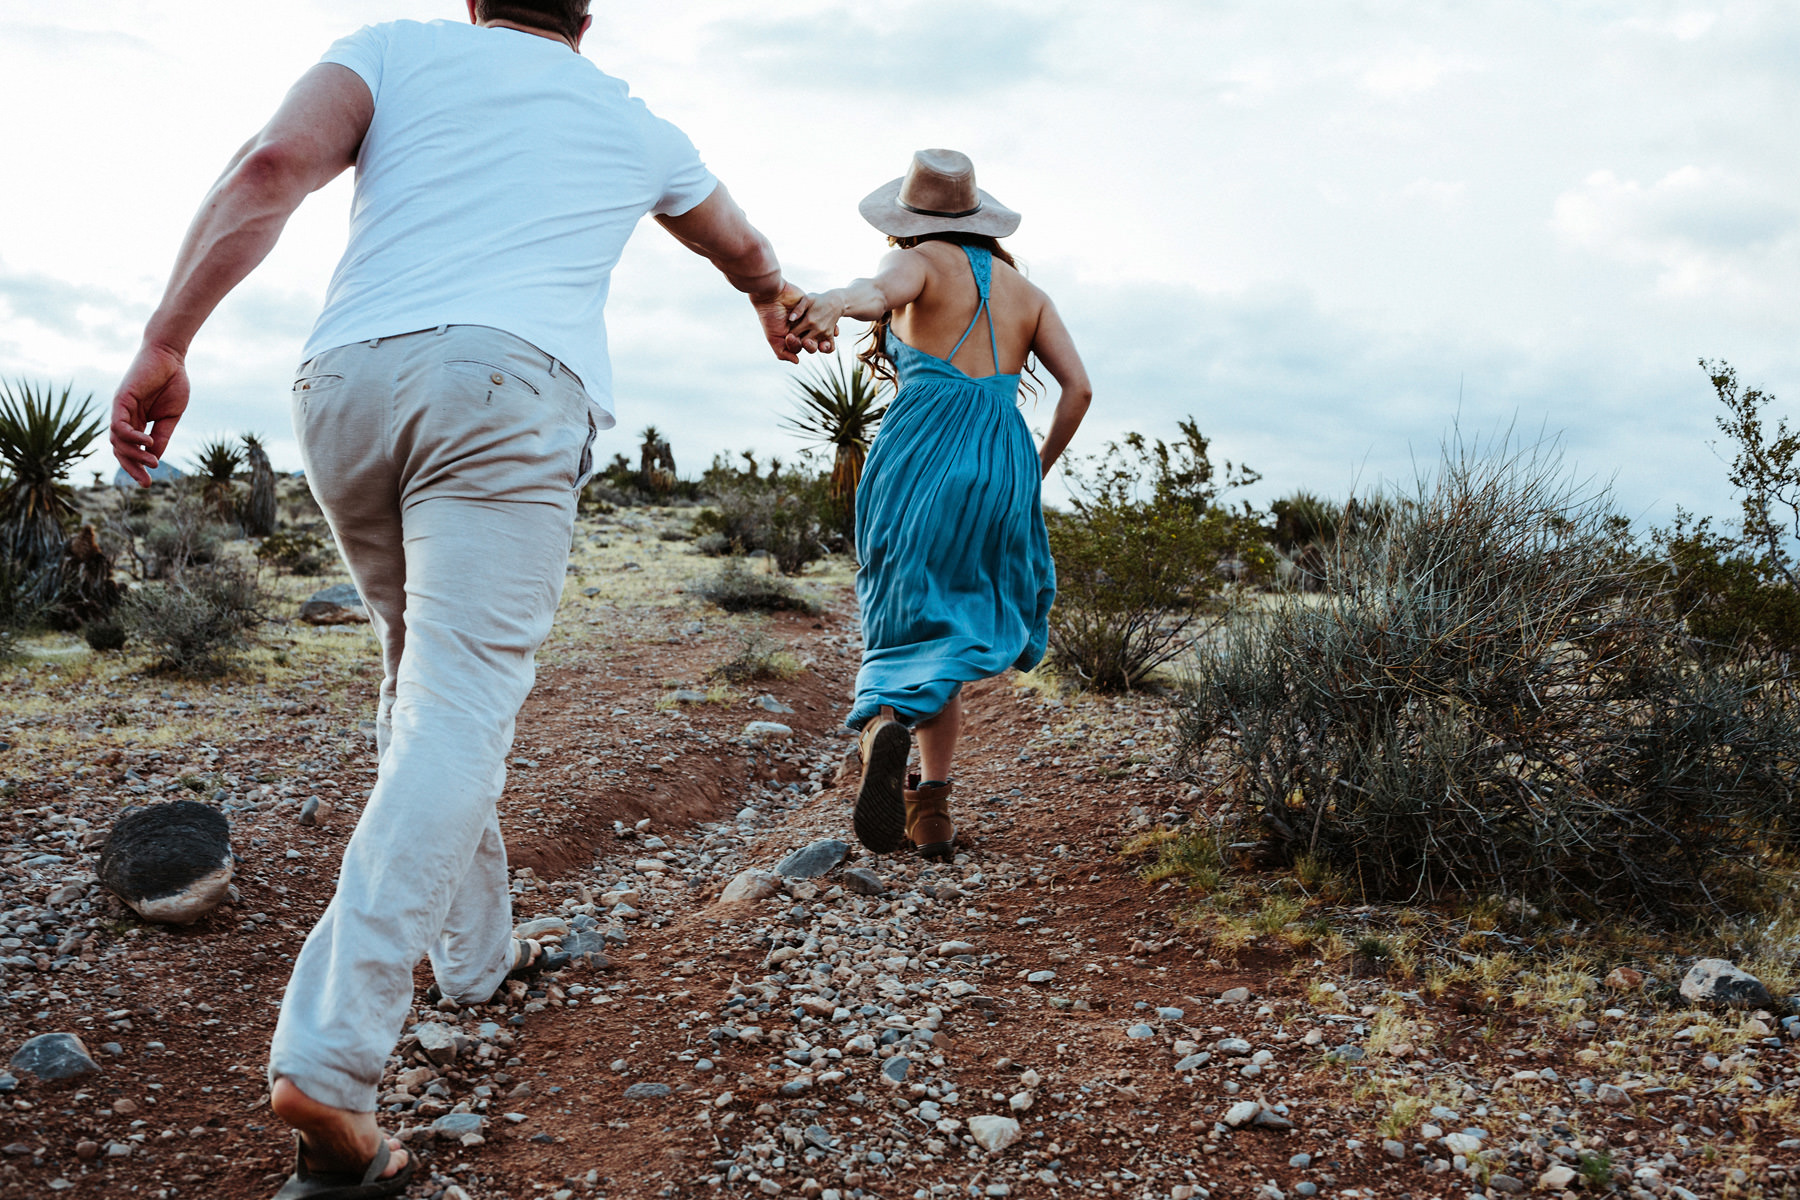 180_Red Rock Canyon Desert Engagement Session Las Vegas, Nevada_Kindling Wedding Photography.JPG